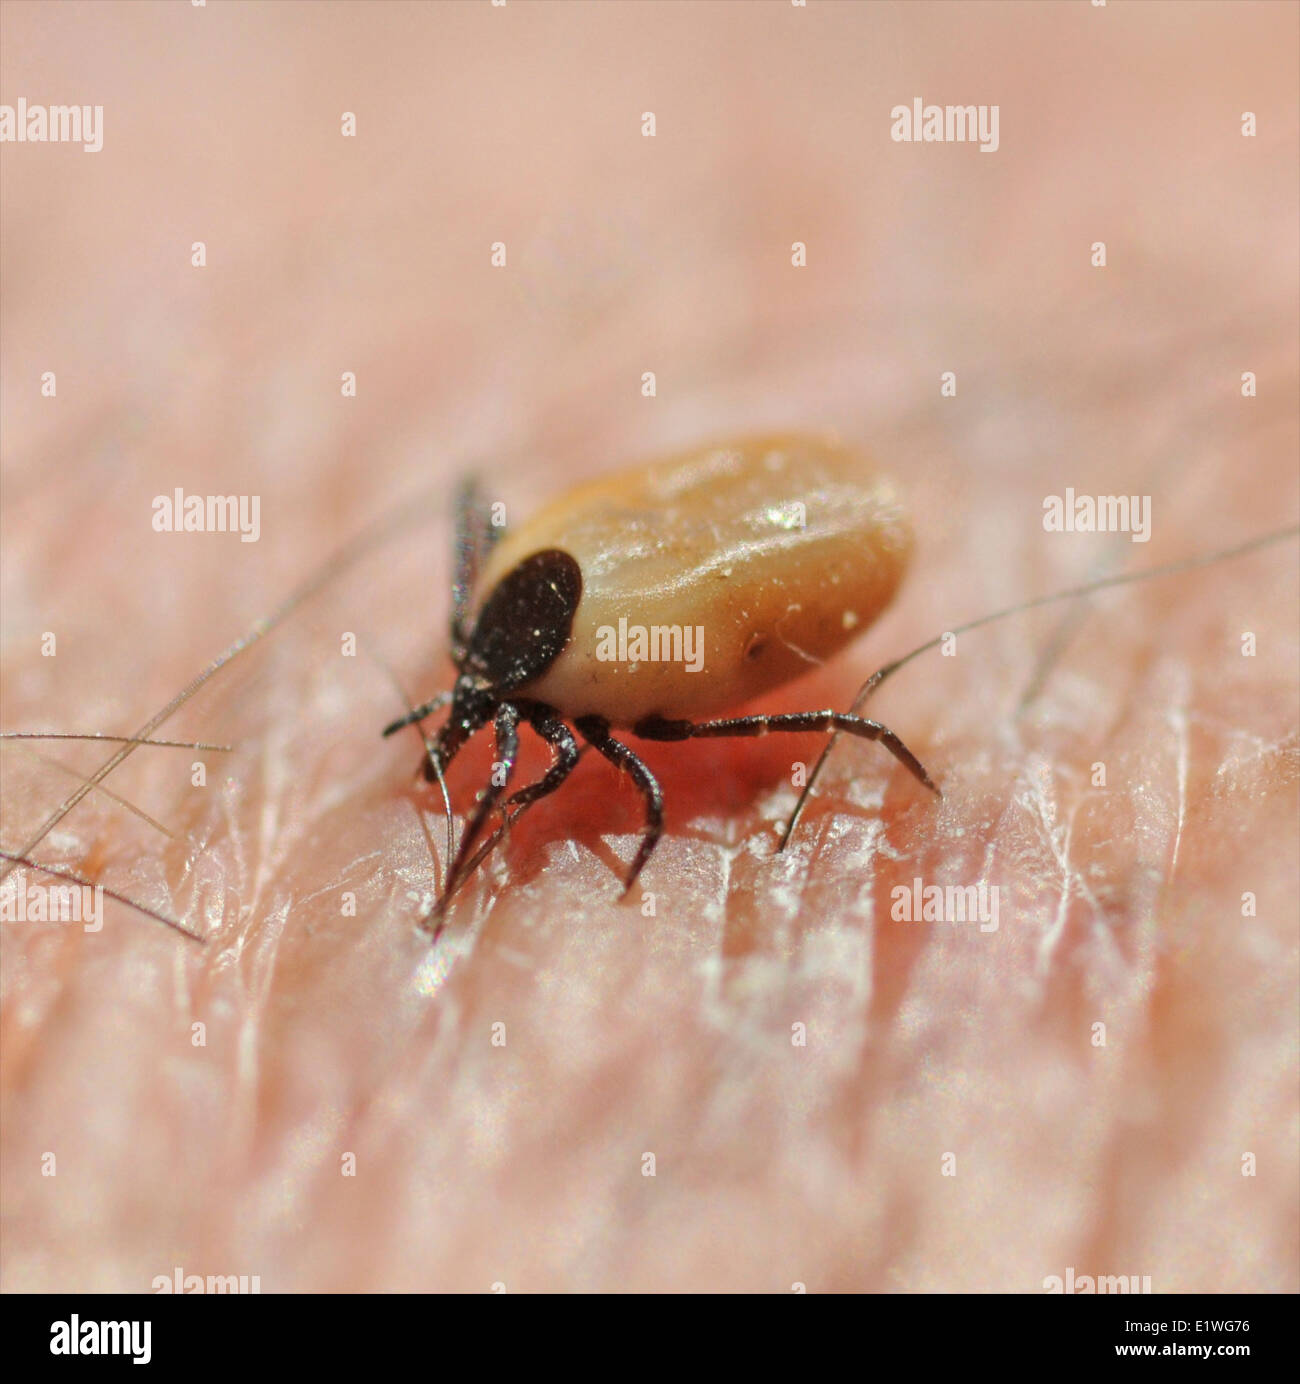 Tick Control - Facts for How to Get Rid of Tick